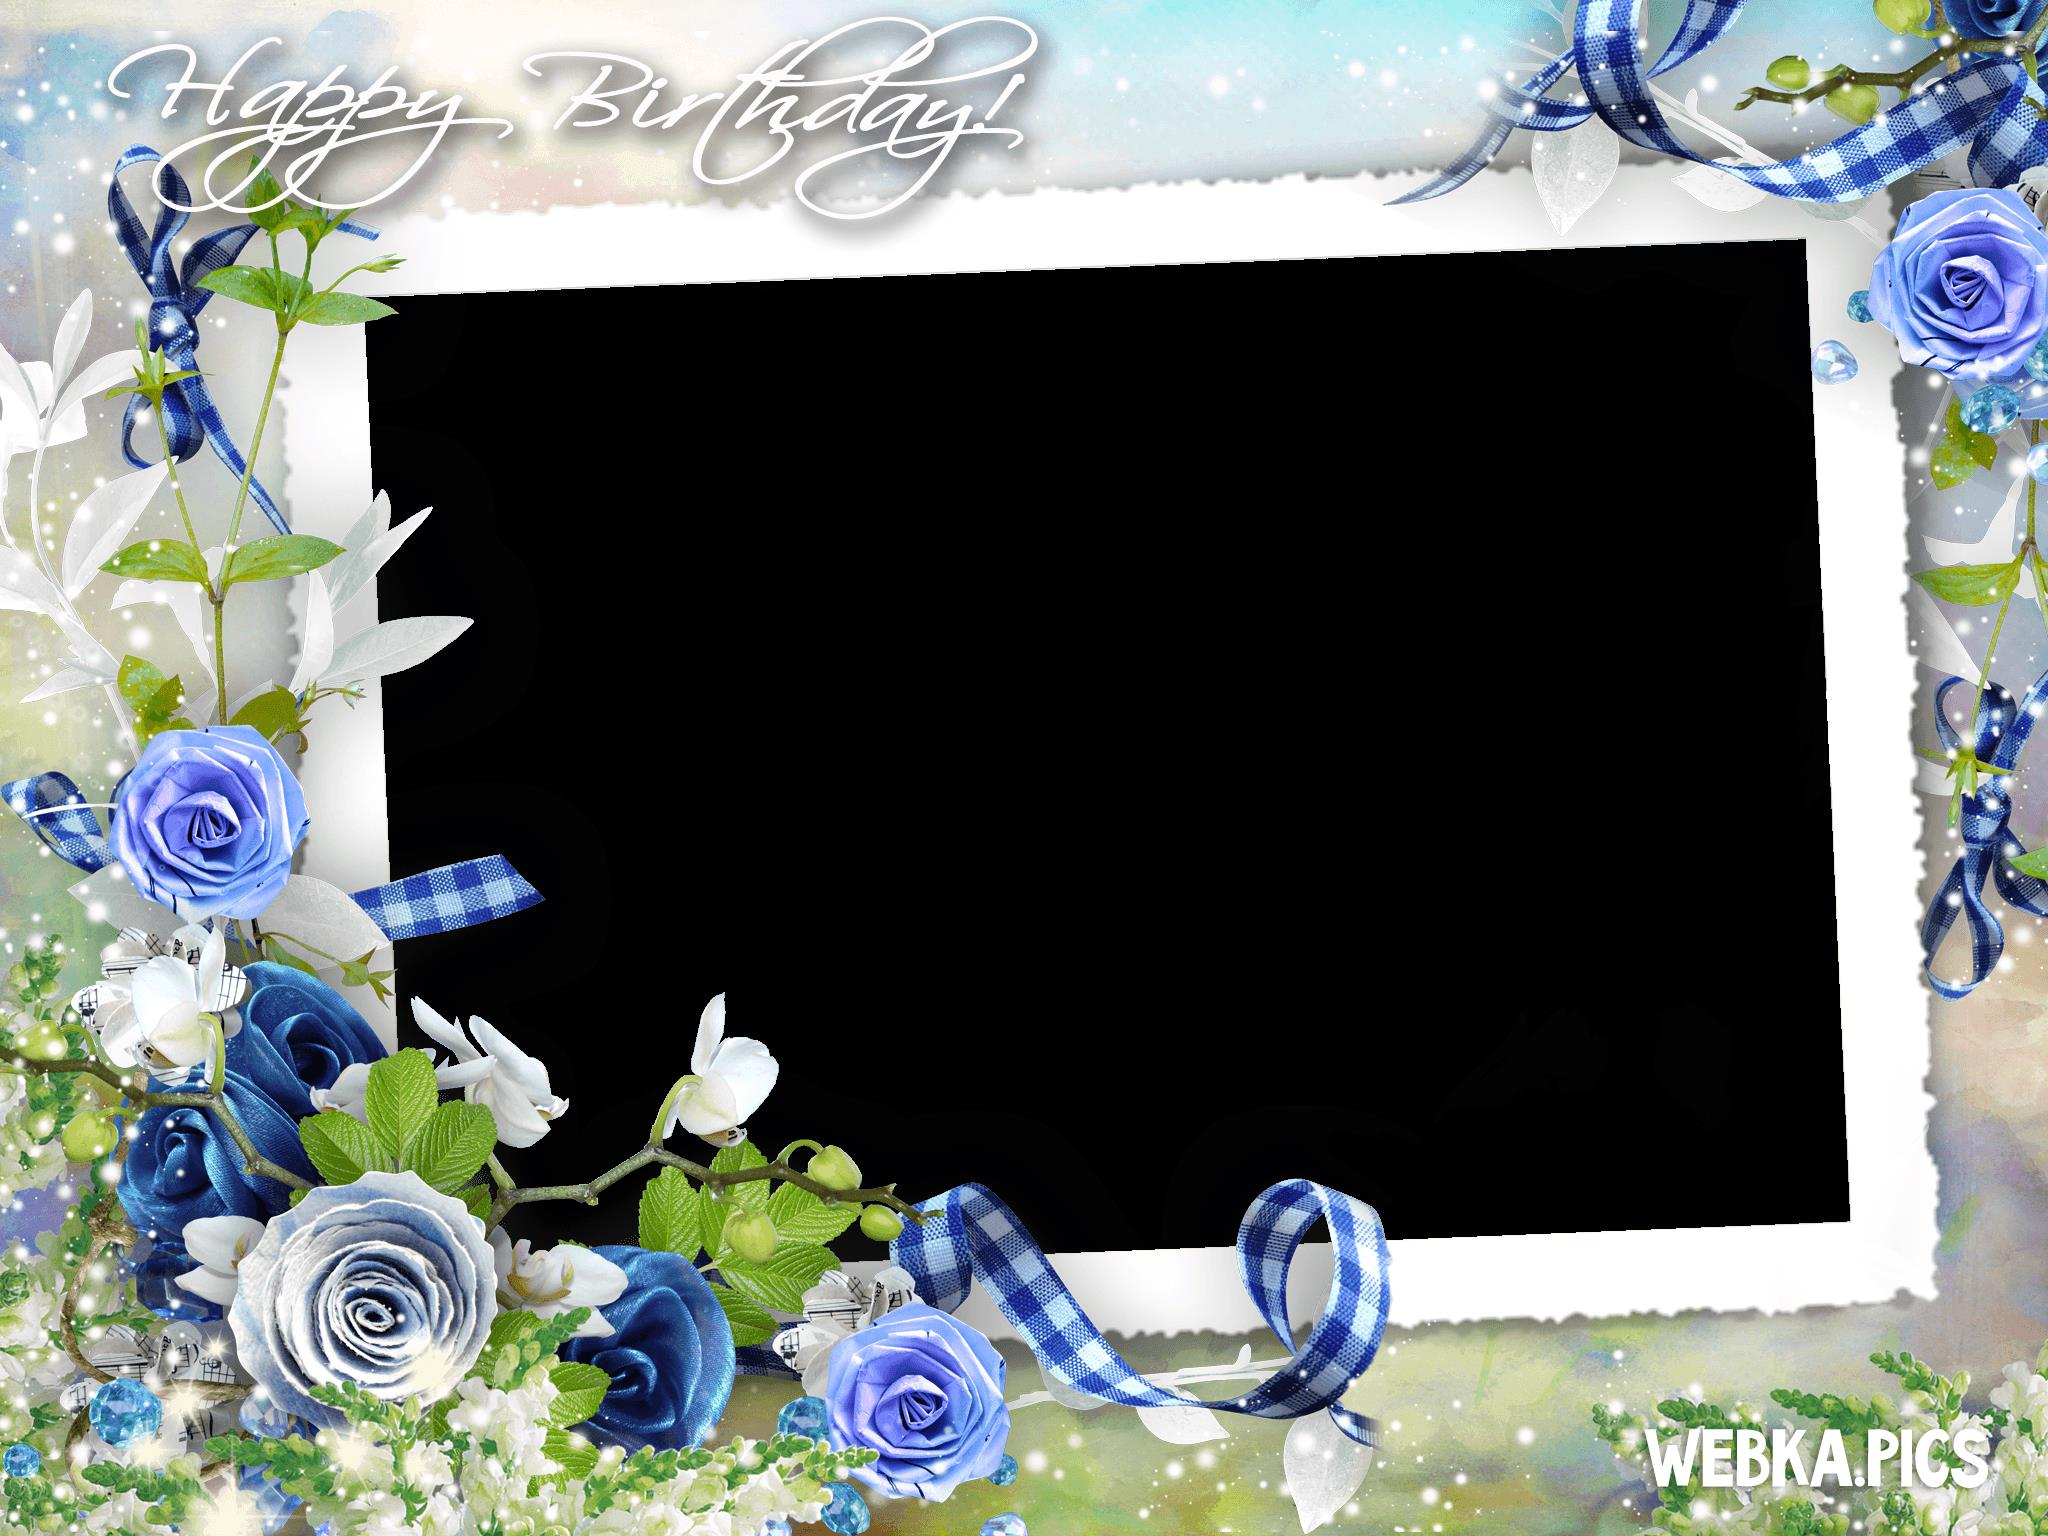 birthday picture frame images ; happy-birthday-photo-frame-picture-0